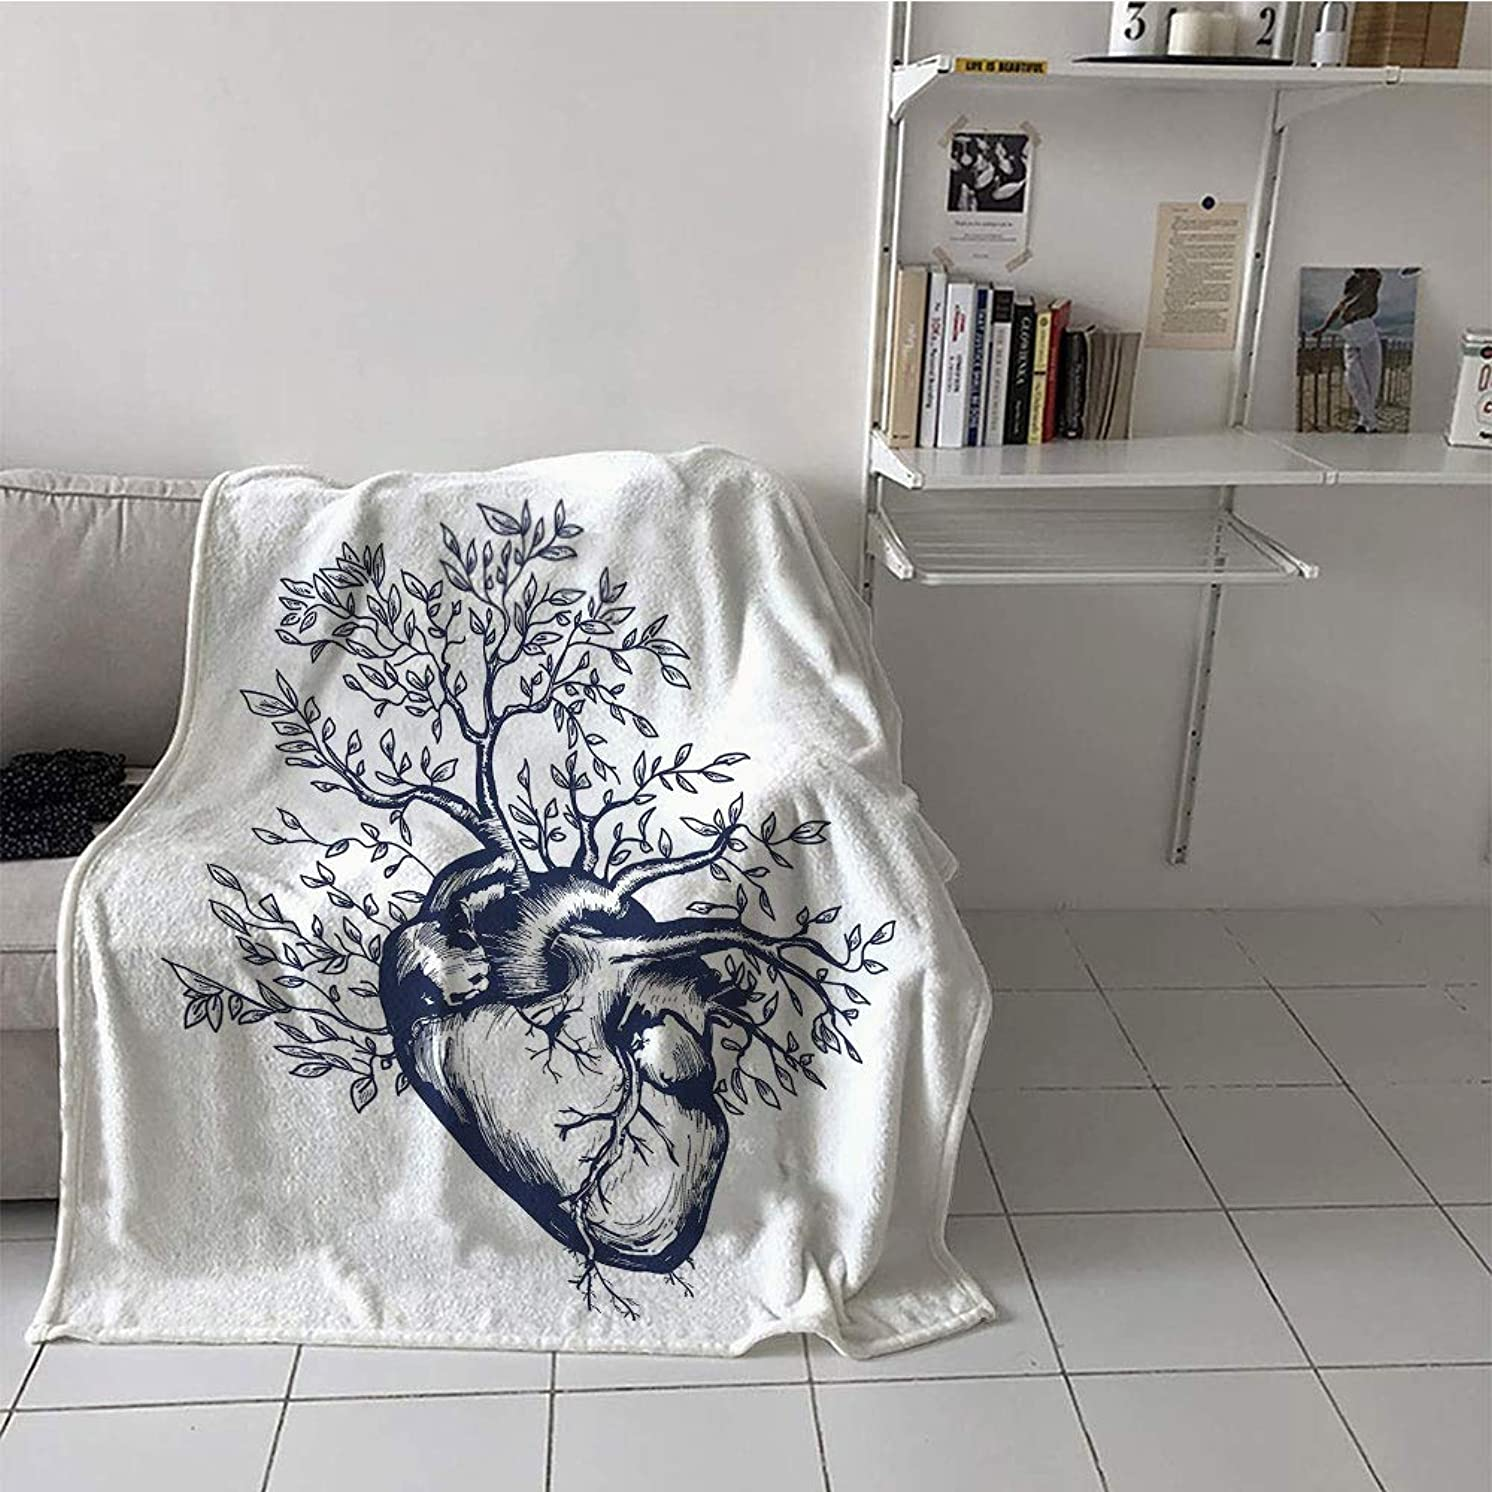 Khaki home Children's Blanket Casual Digital Printing Blanket (60 by 62 Inch,Surrealistic,Human Heart Blooming with Tree Leaves Anatomy of Life and Love Concept,Dark Blue Cream